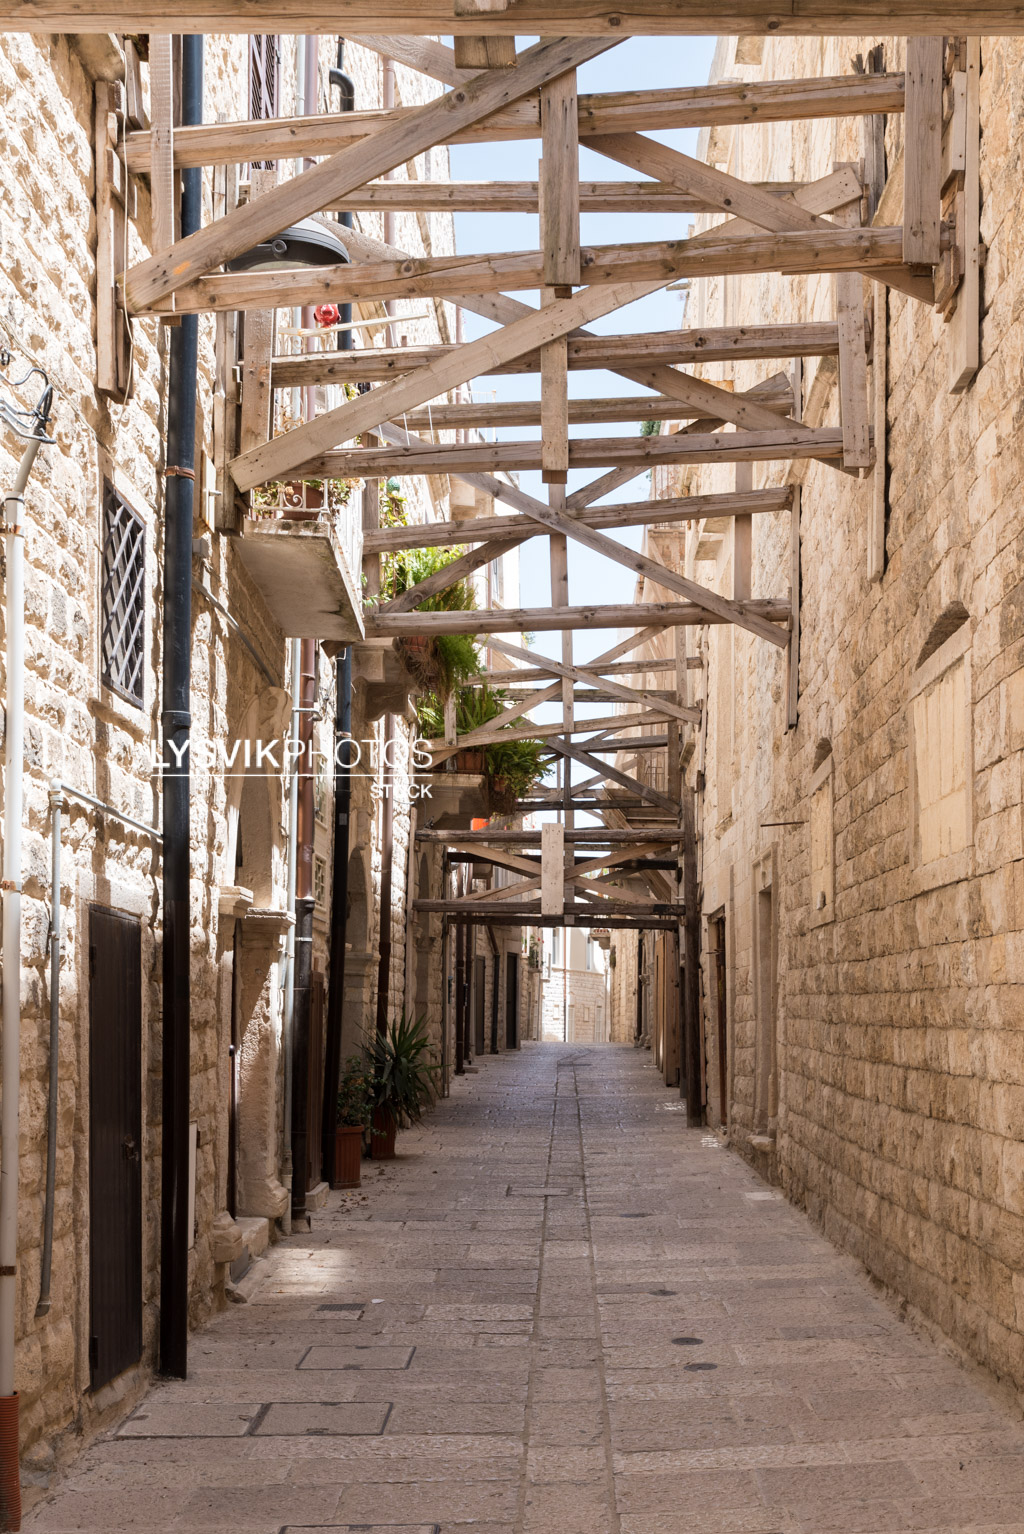 In Molfetta, a number of houses are supported with beams to prevent collapse